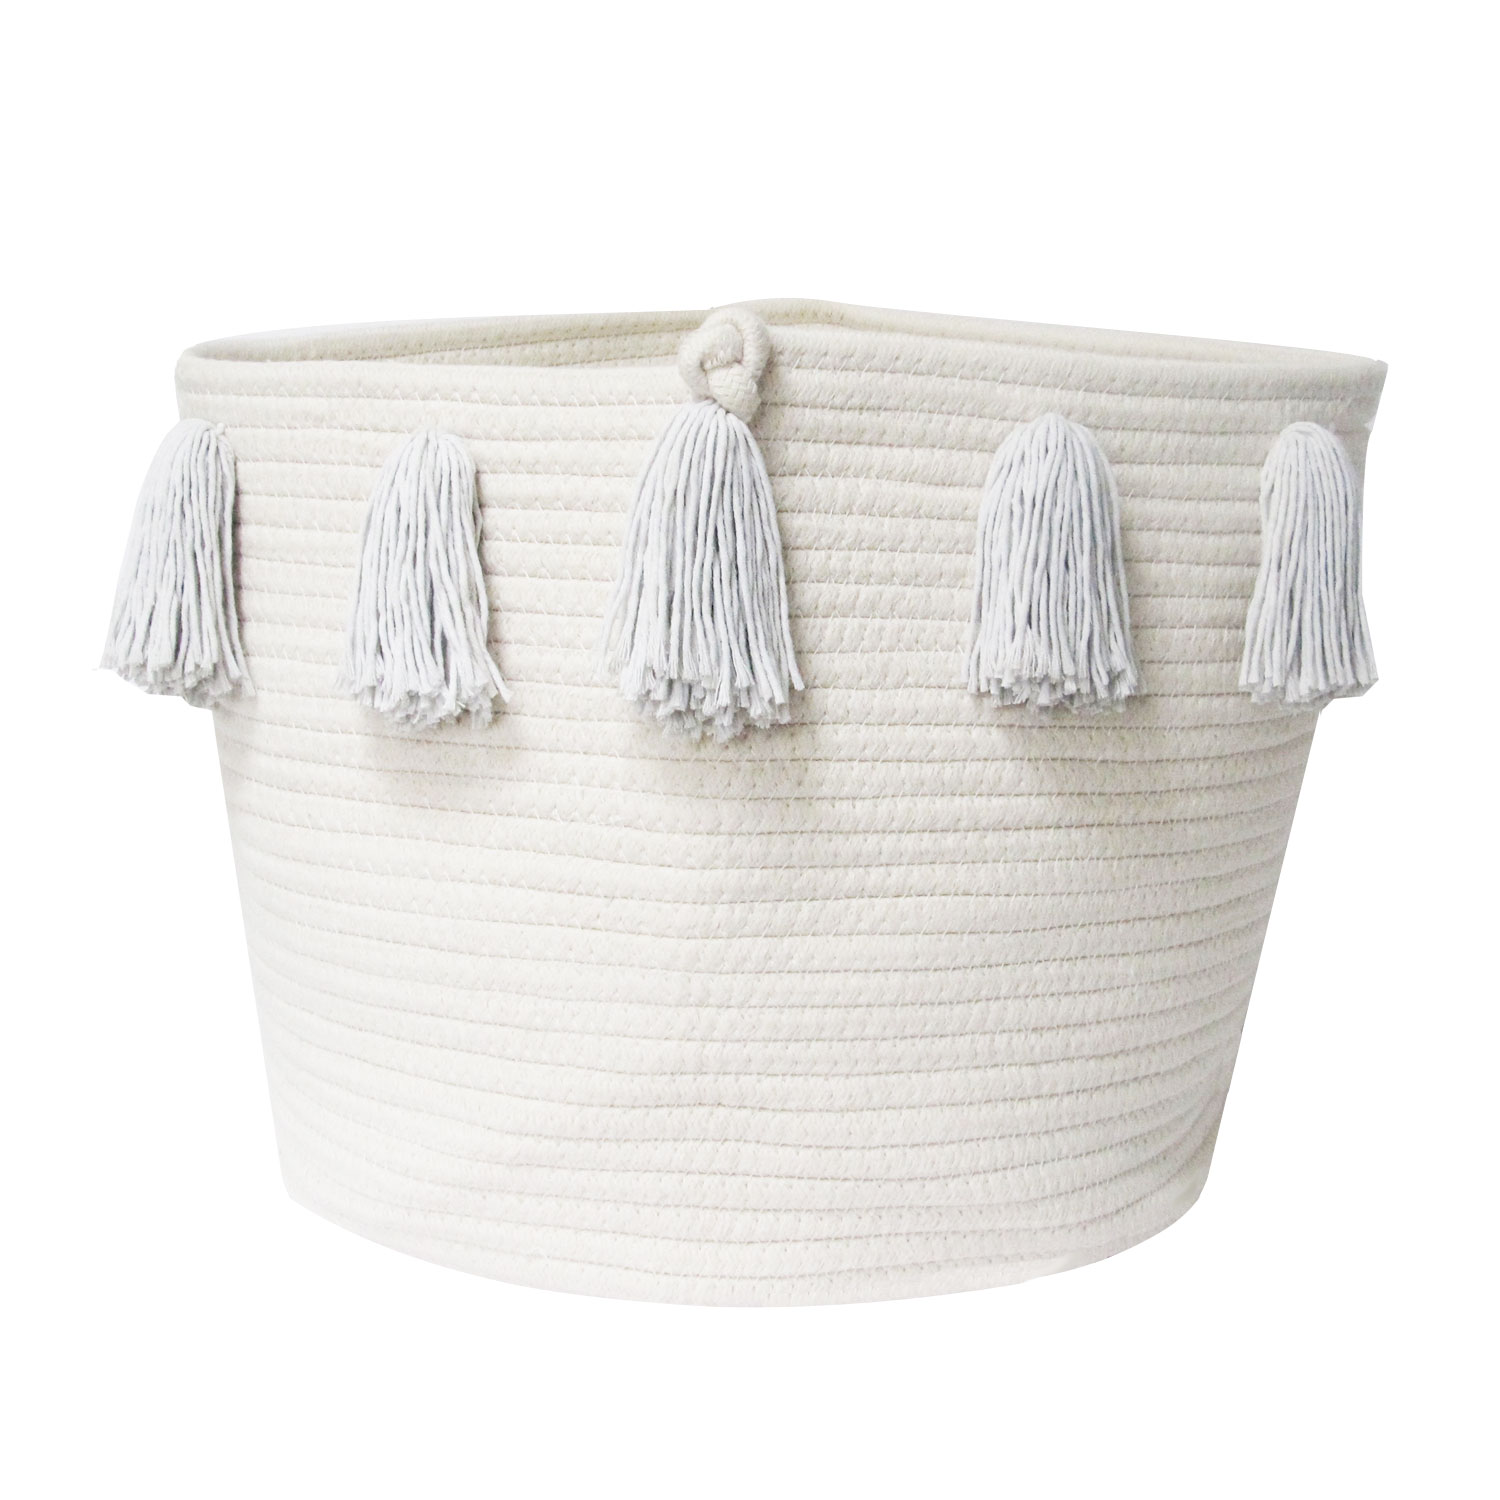 Basket large handles without TASSELS to customize